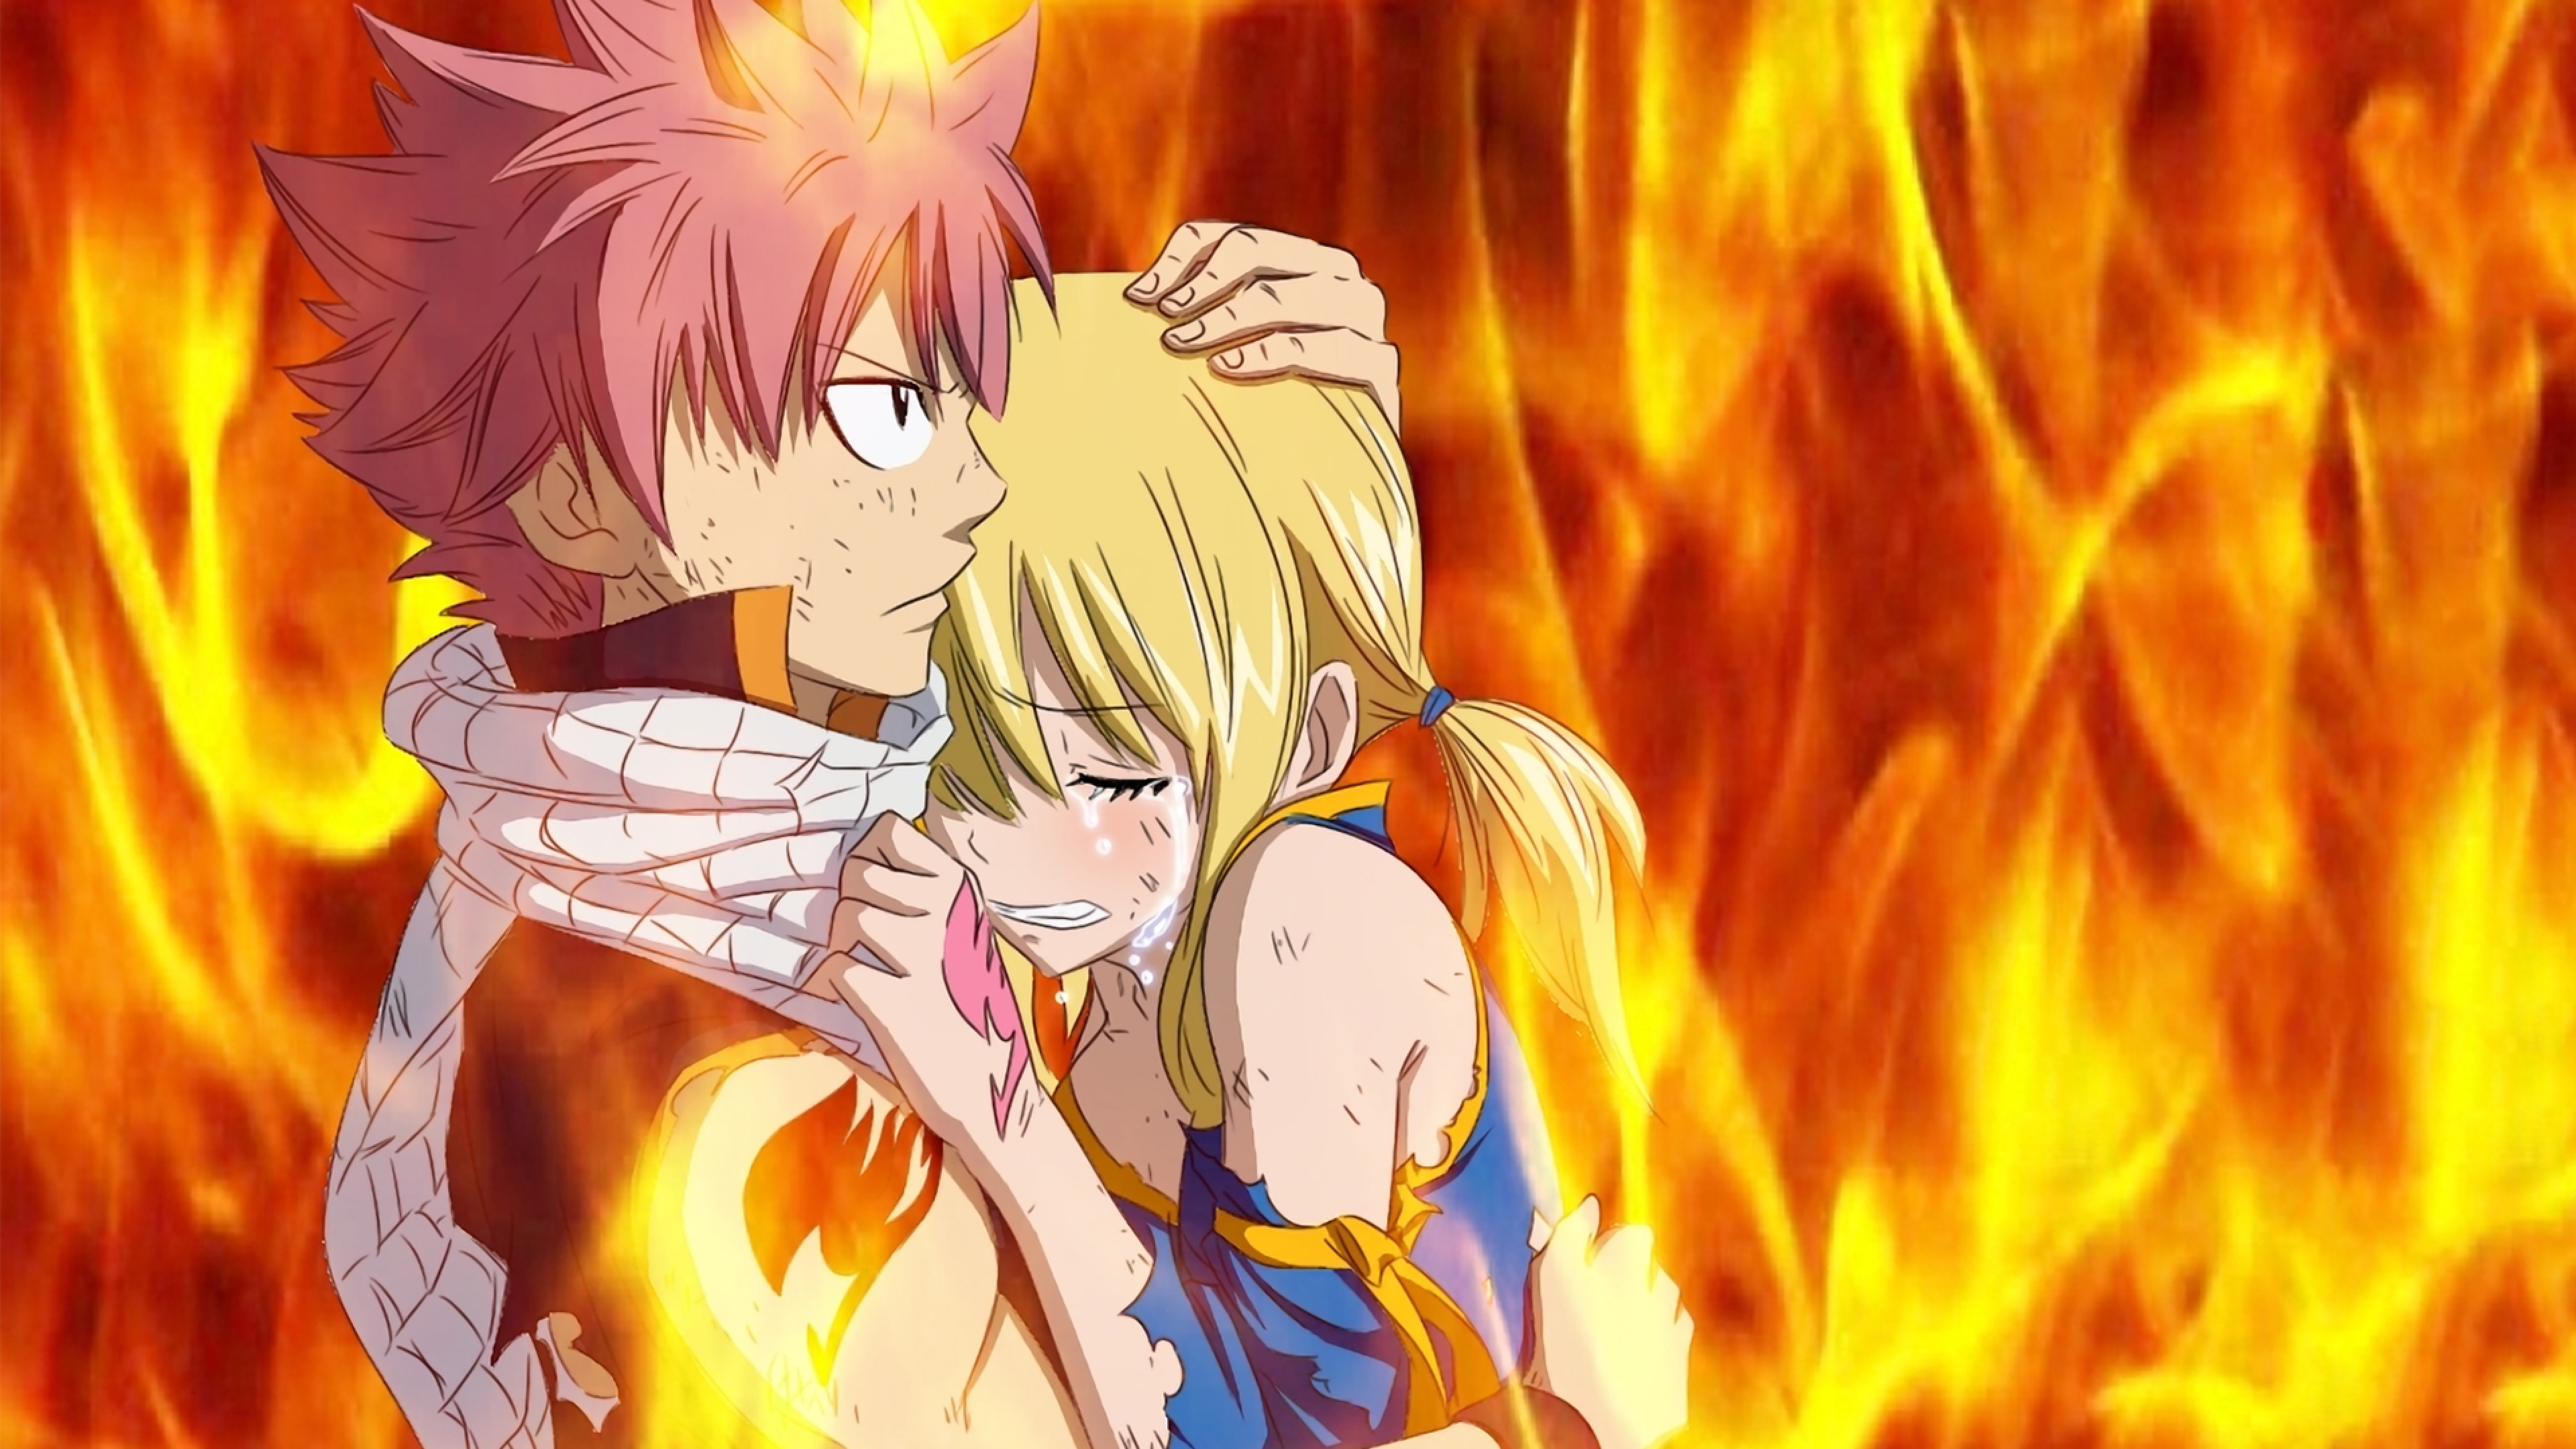 1920x1080 Fairy Tail Natsu Erza Lucy And Gray HD Anime Wallpaper 1280A 720